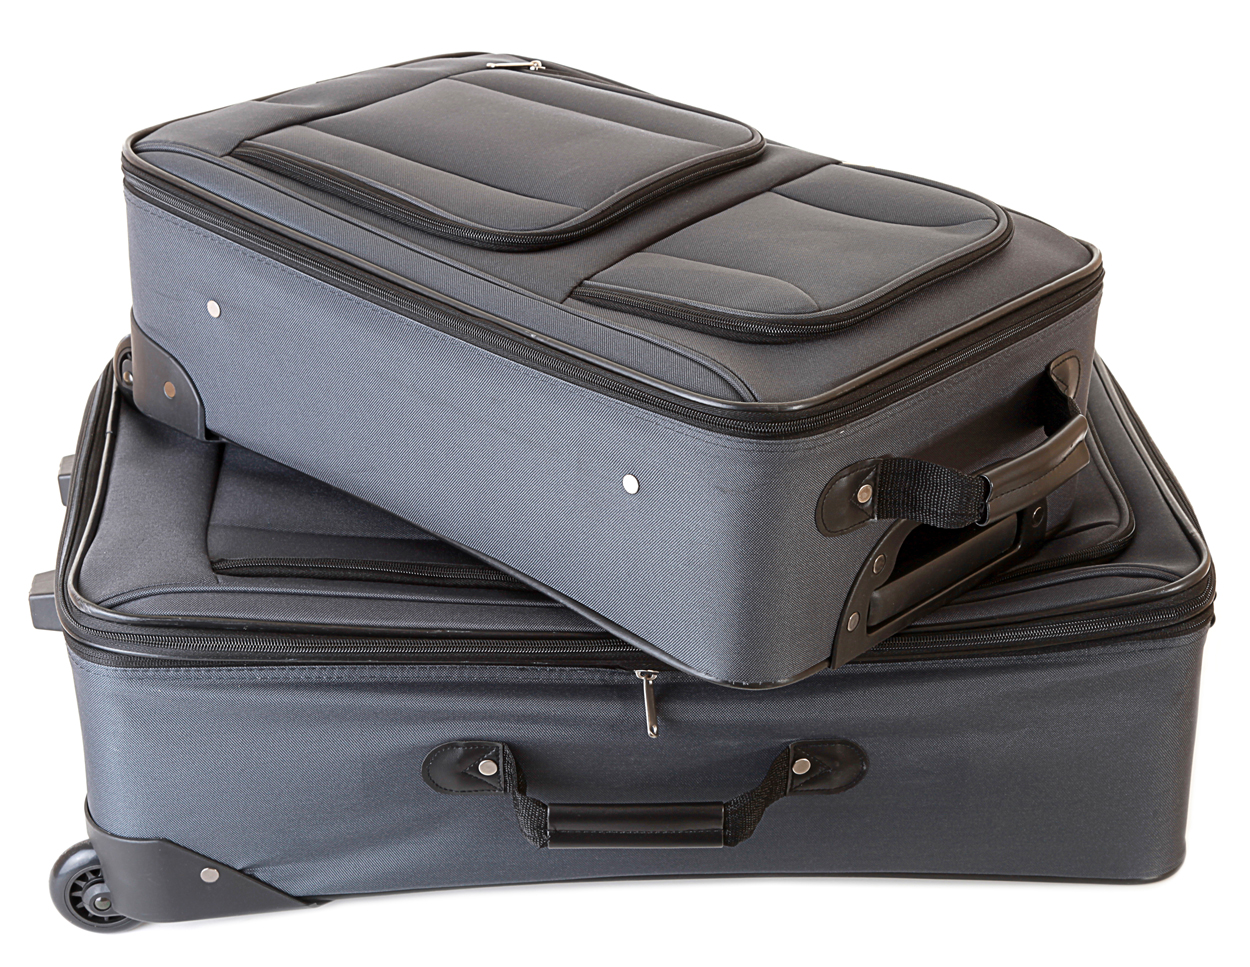 Bill Bailey Travel Club Offers Tips On Preparing For Your Vacation – Packing Tips